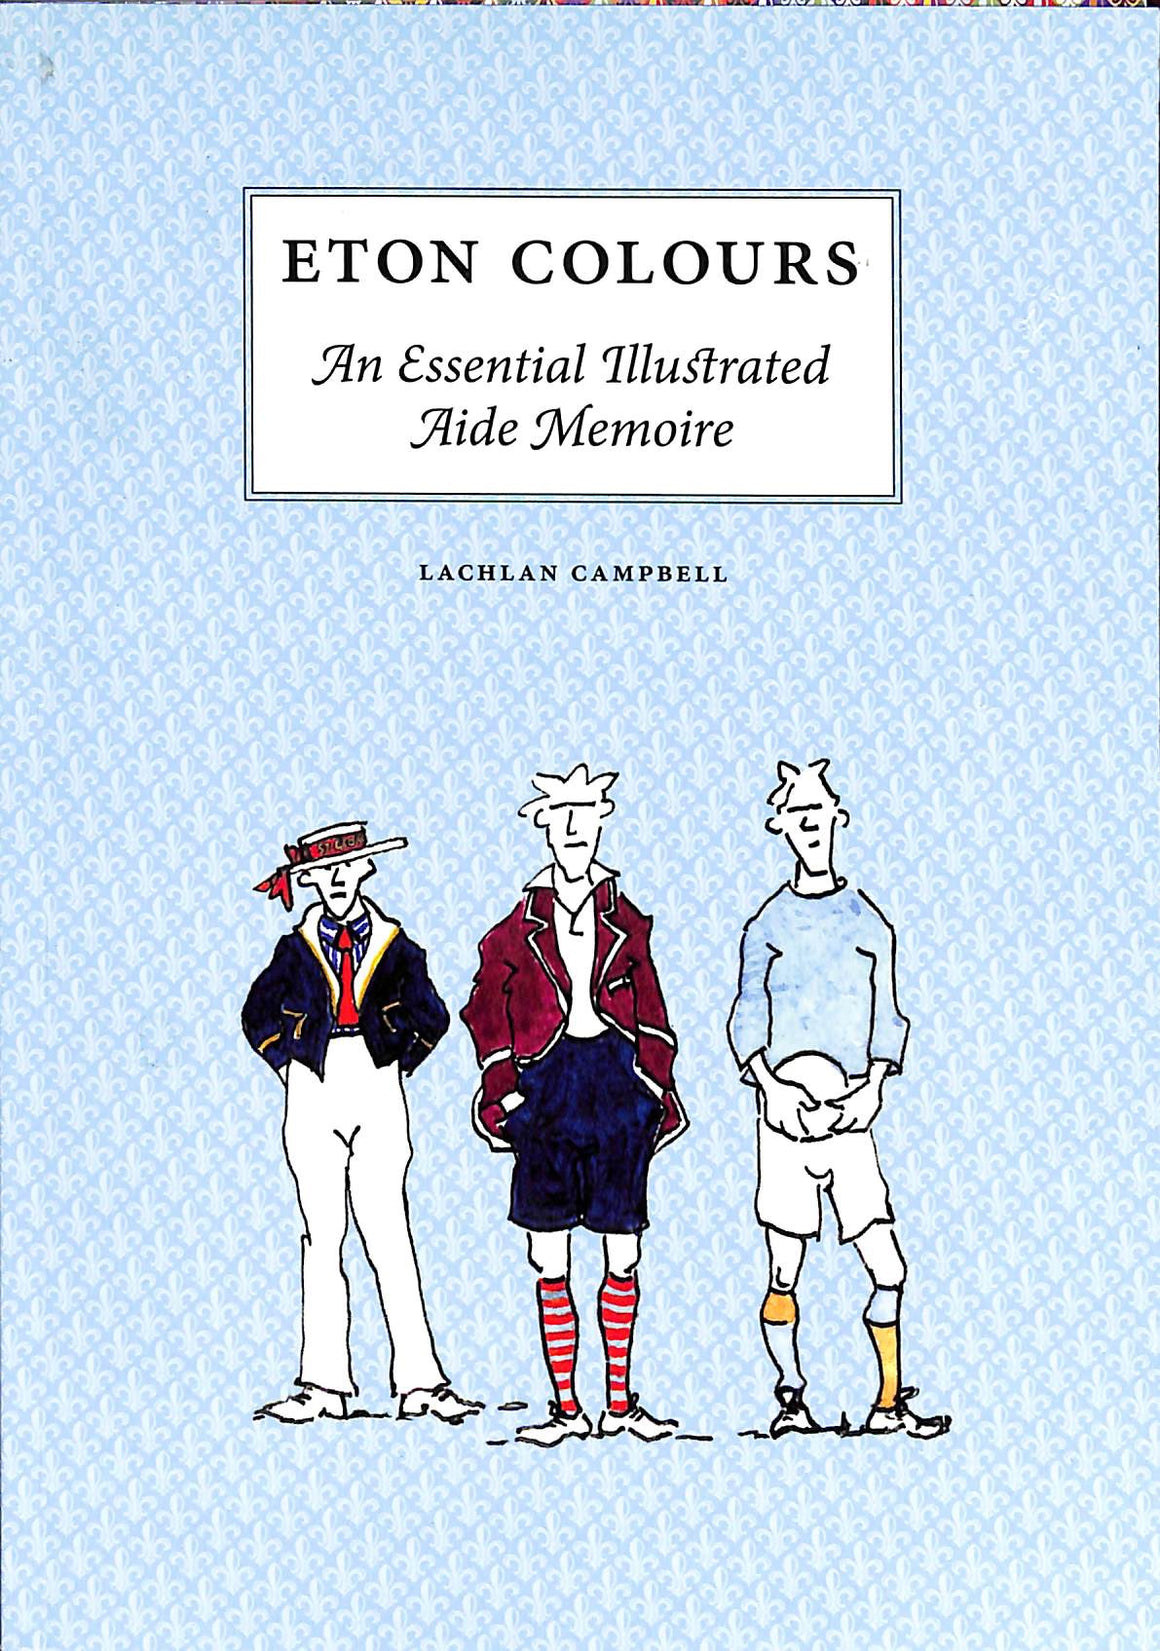 """Eton Colours: An Essential Illustrated Aide Memoire"" CAMPBELL, Lachlan"